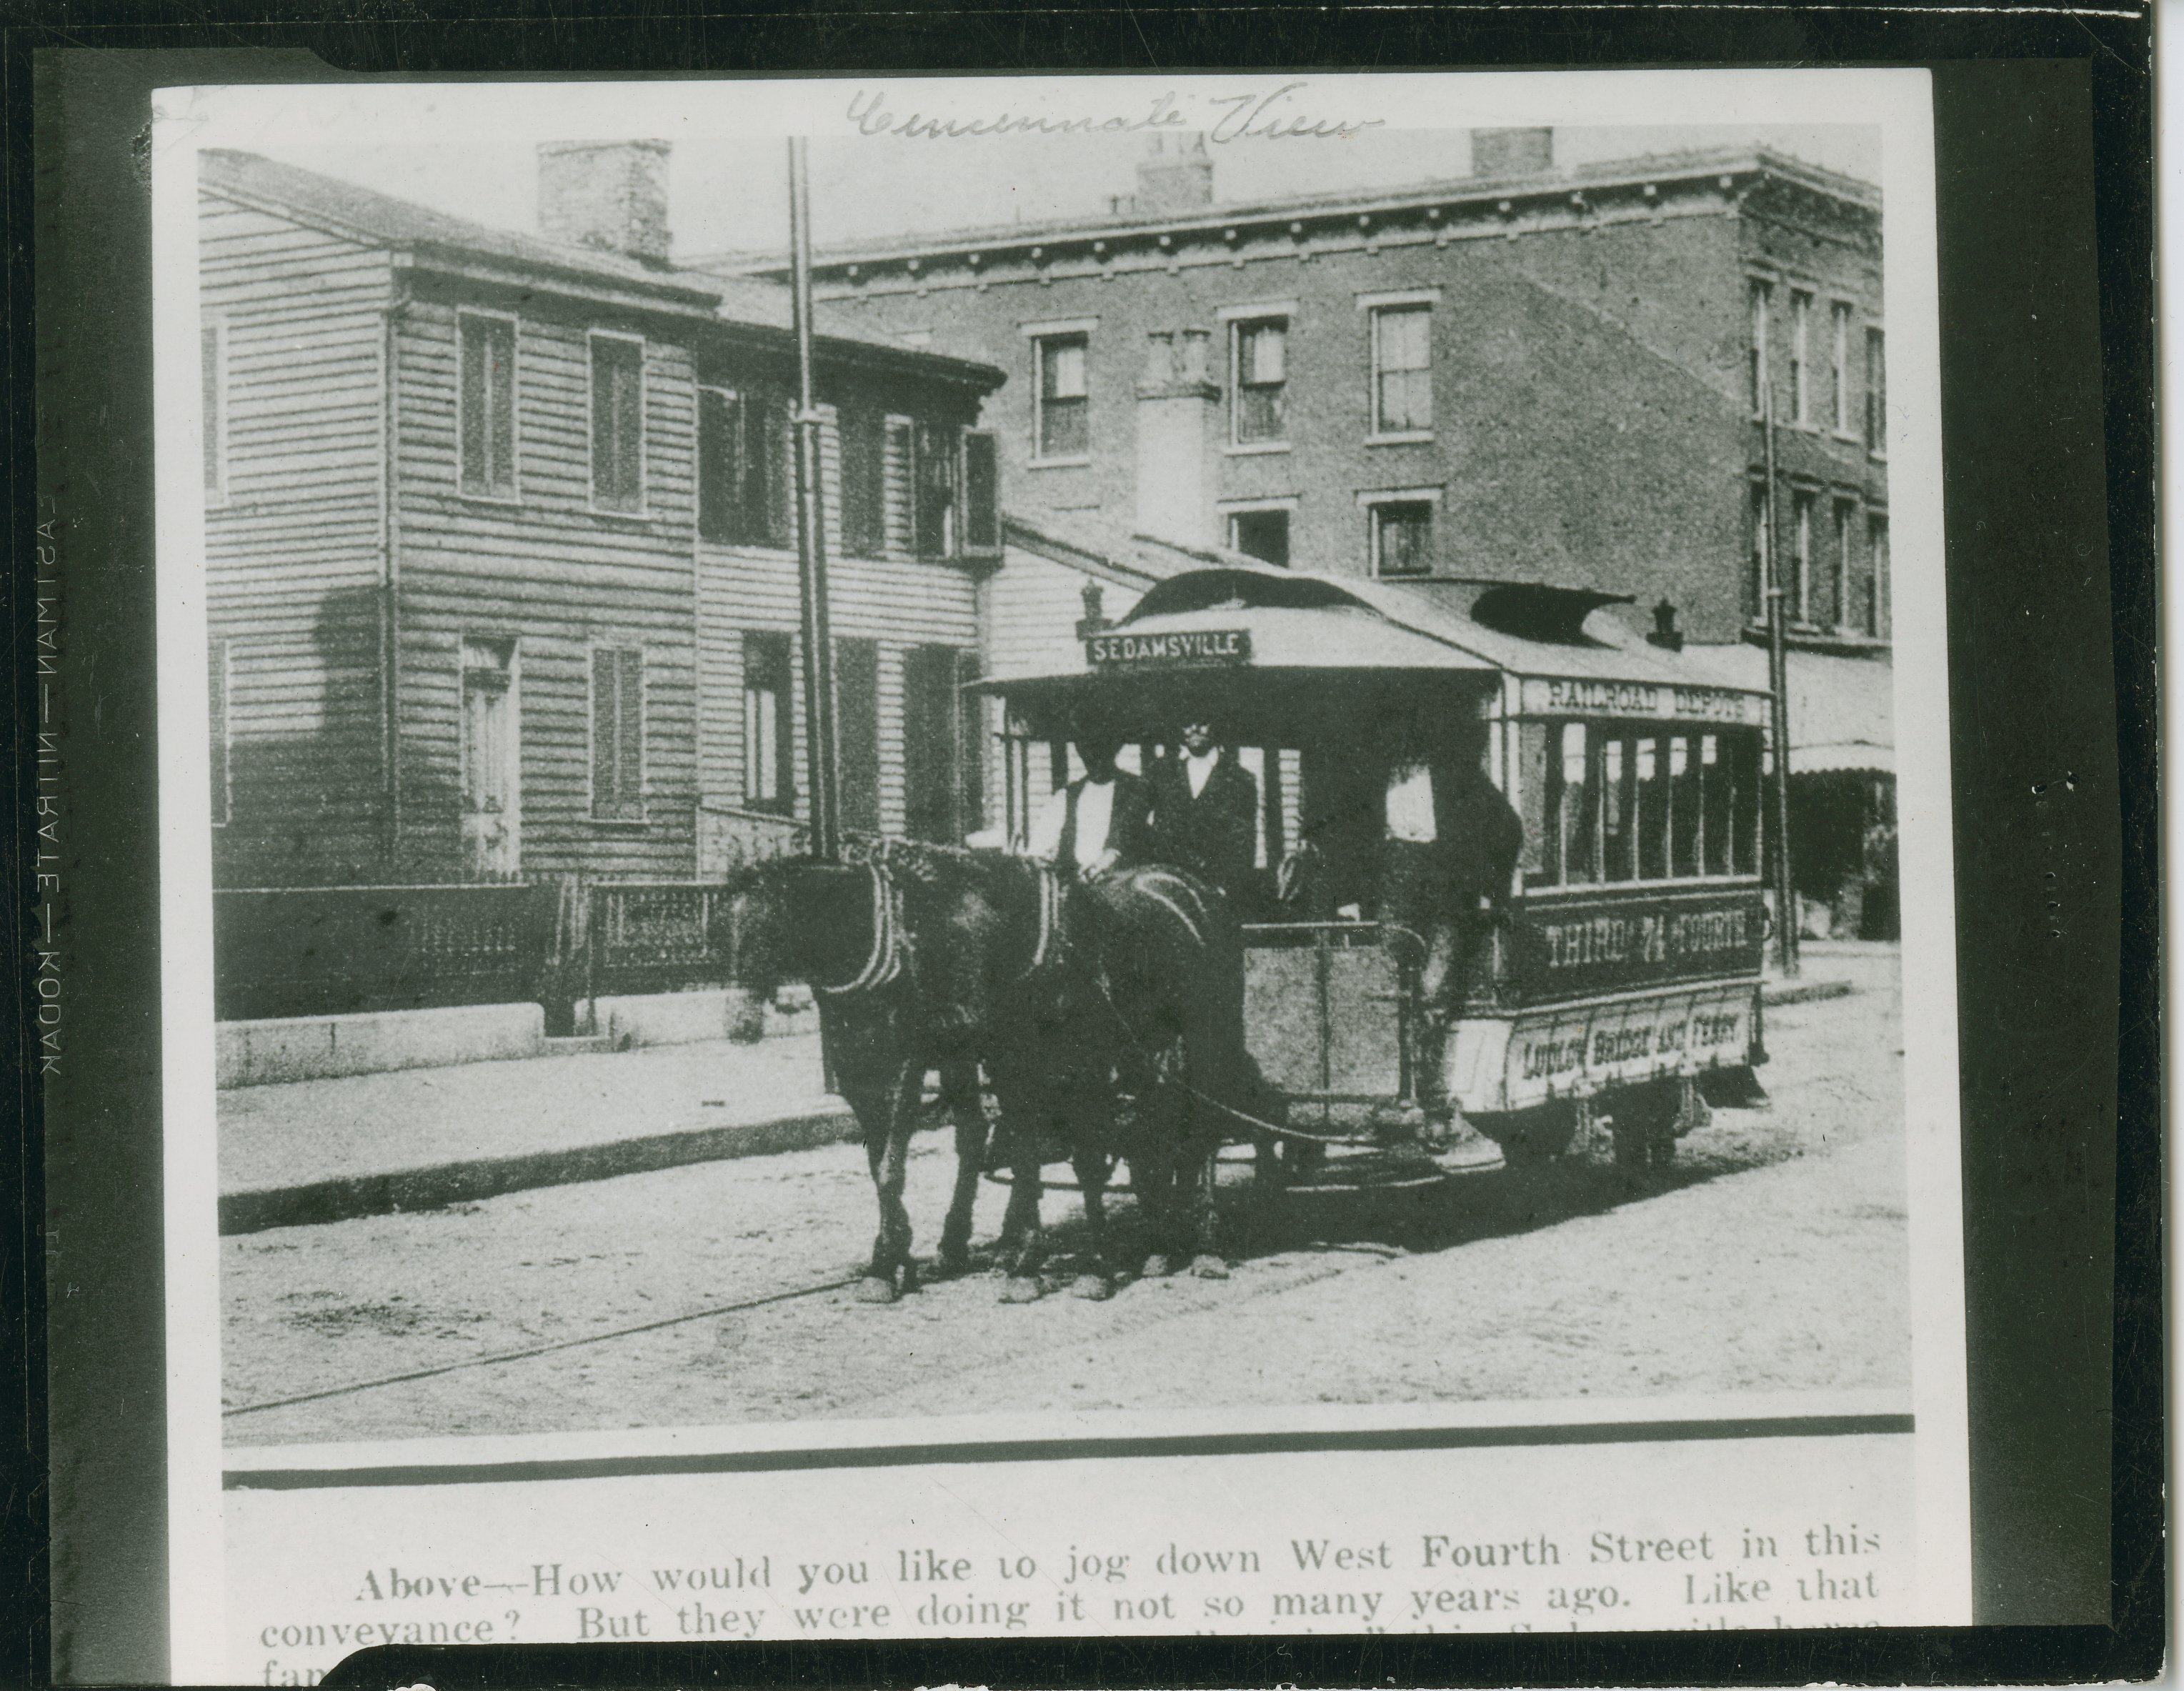 Horse Drawn Street Car in Cincinnati, Ohio. Photo courtesy of The Ohio Memory Project, Ohio History Connection. 